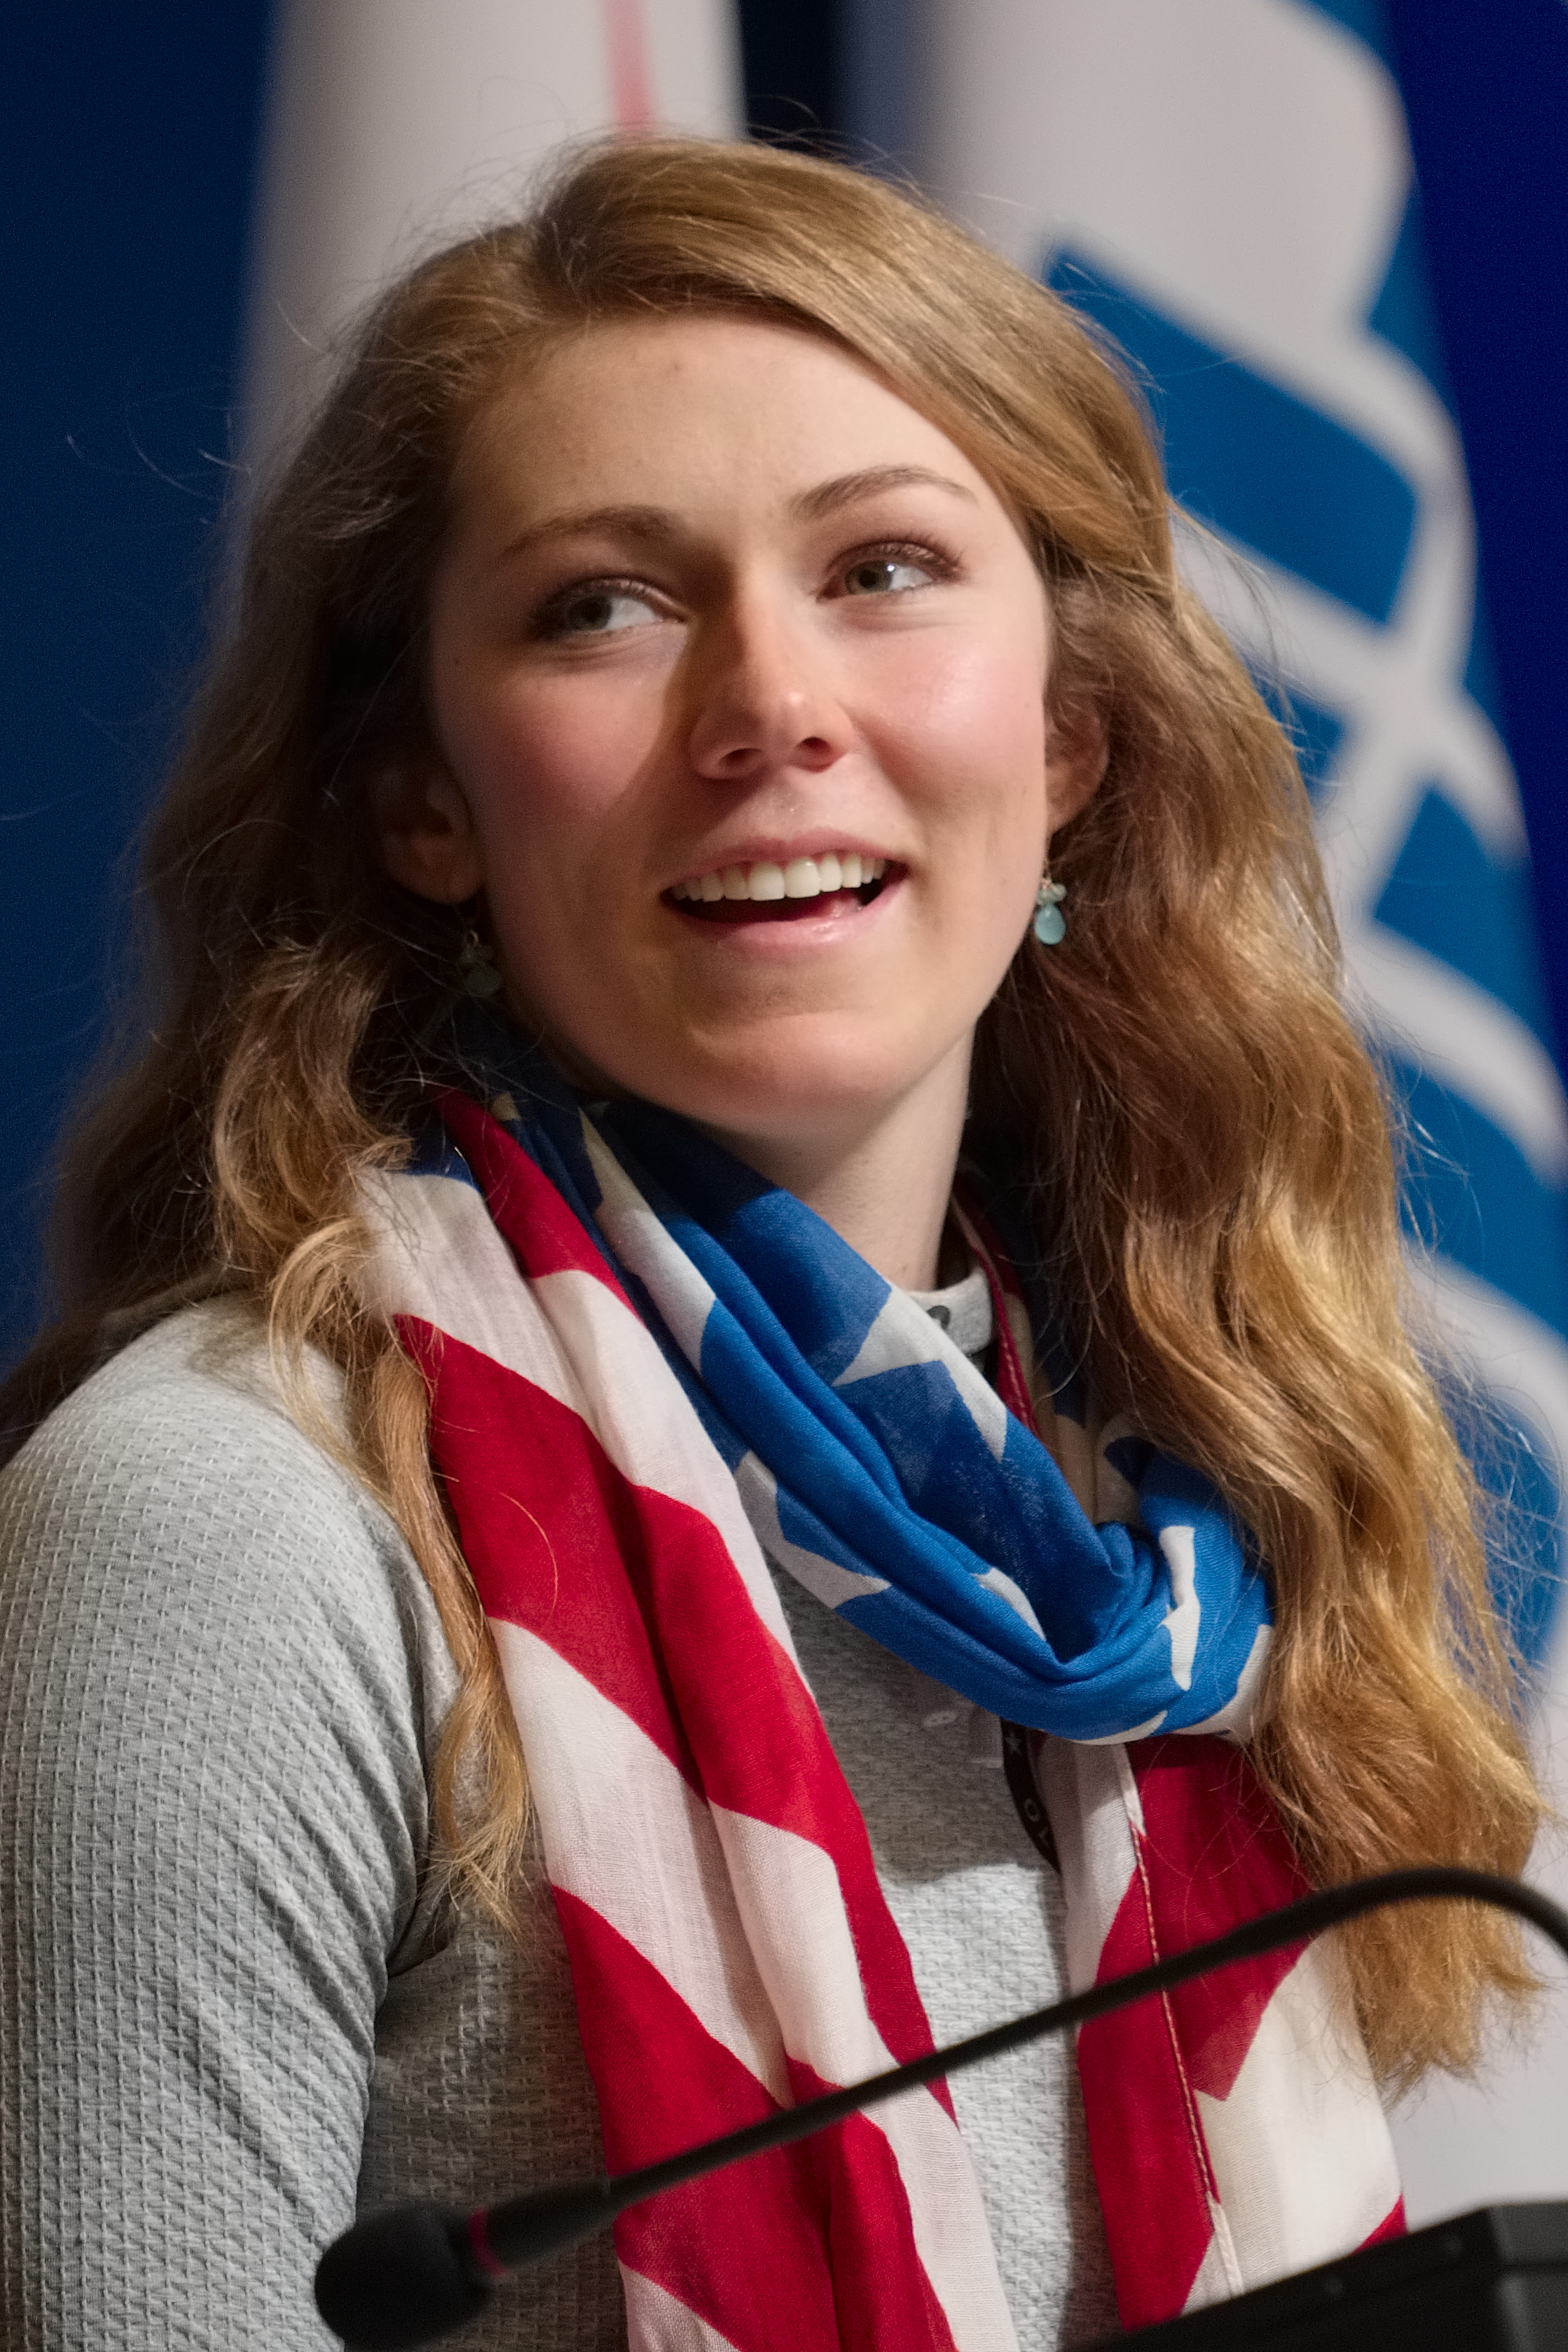 U.S. alpine skier Mikaela Shiffrin talks about her gold medal win in the women's slalom during a press conference at the 2014 Winter Olympics, Saturday, Feb. 22, 2014, in Sochi, Russia. (AP Photo/J. David Ake)